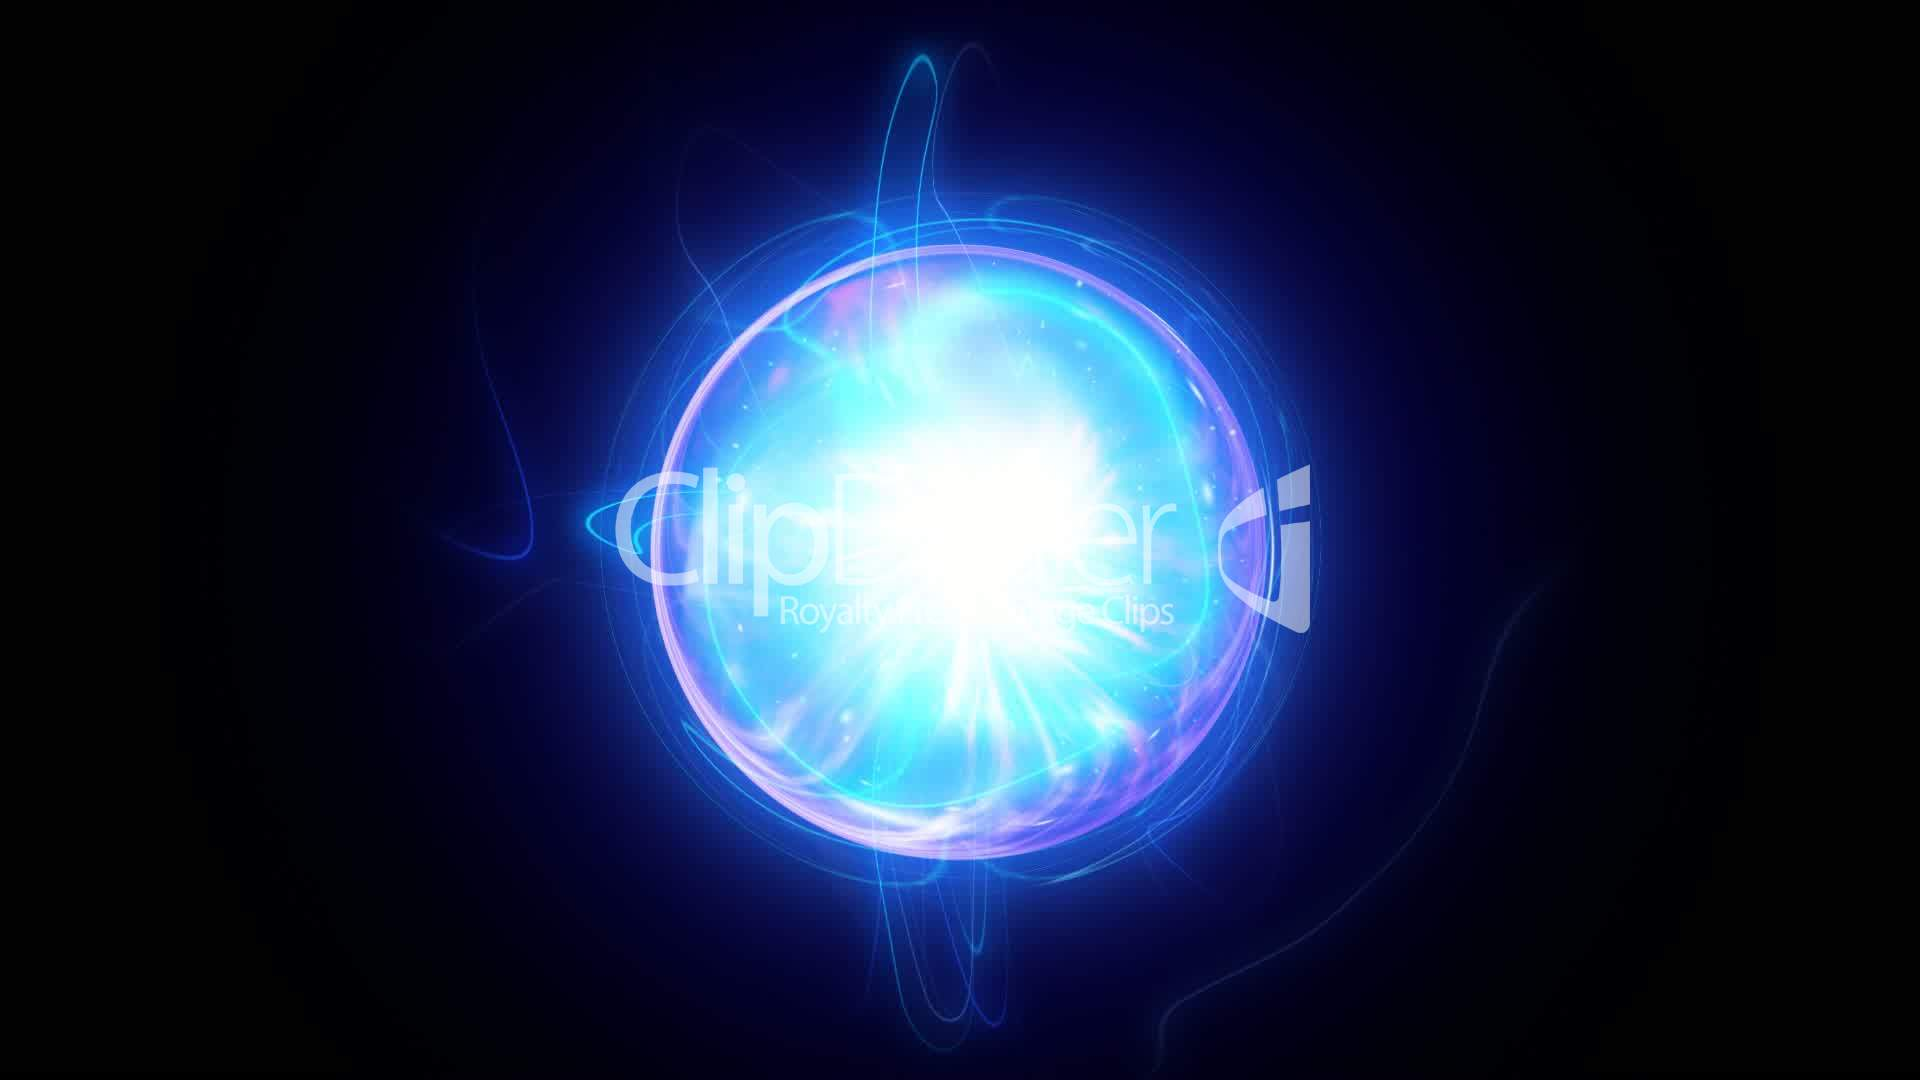 Terms Of Use >> Energy ball.: Royalty-free video and stock footage